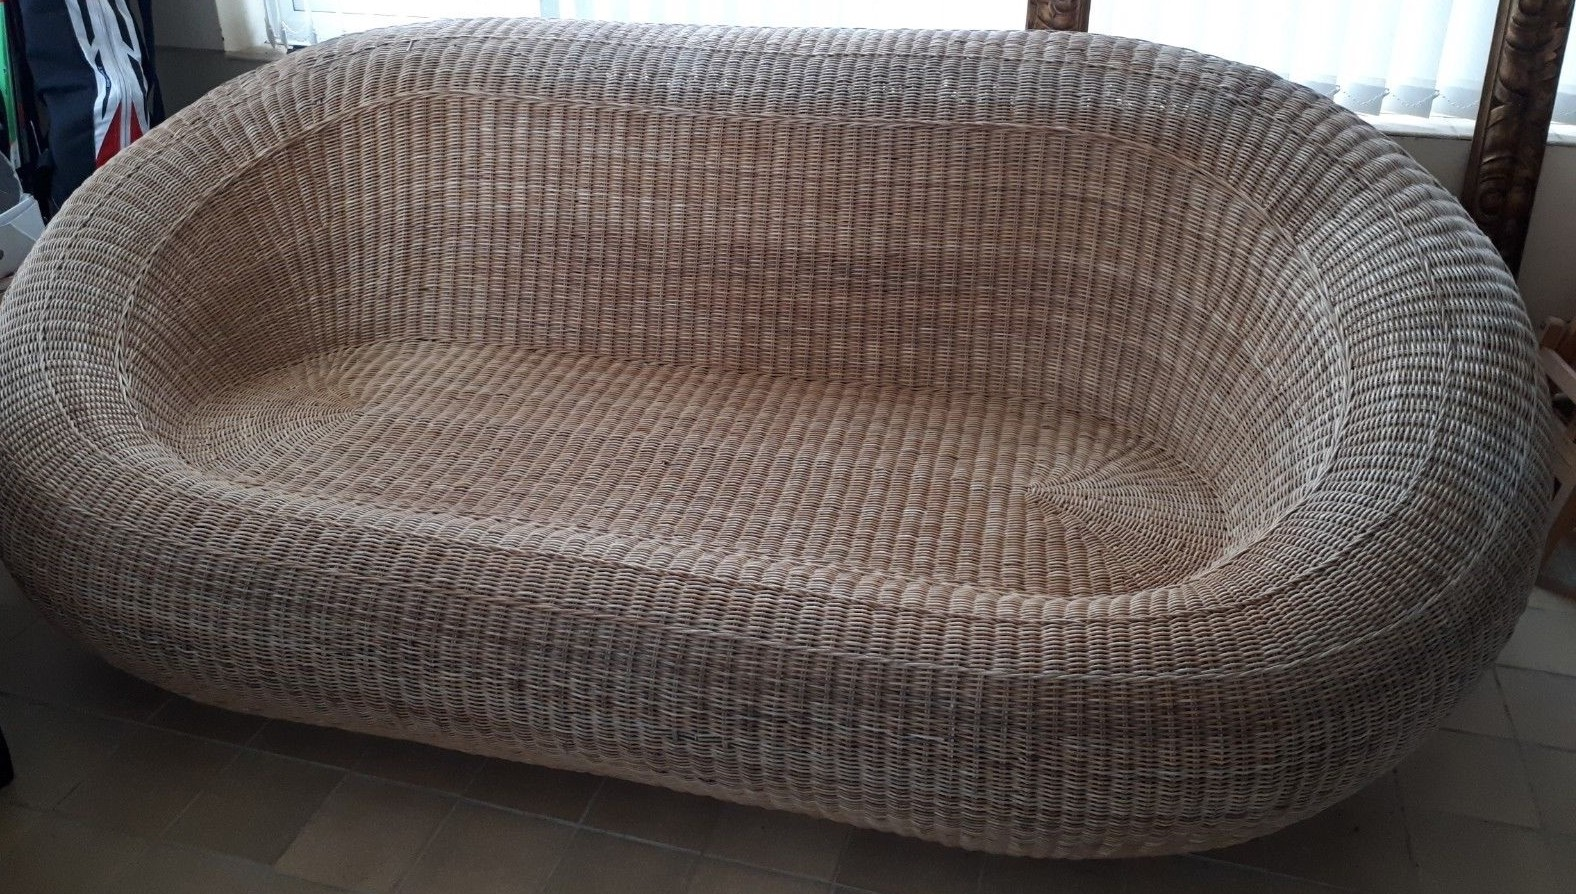 Gentil Vintage Wicker Rattan Ball Chair And Sofa Isamu Kenmochi Style